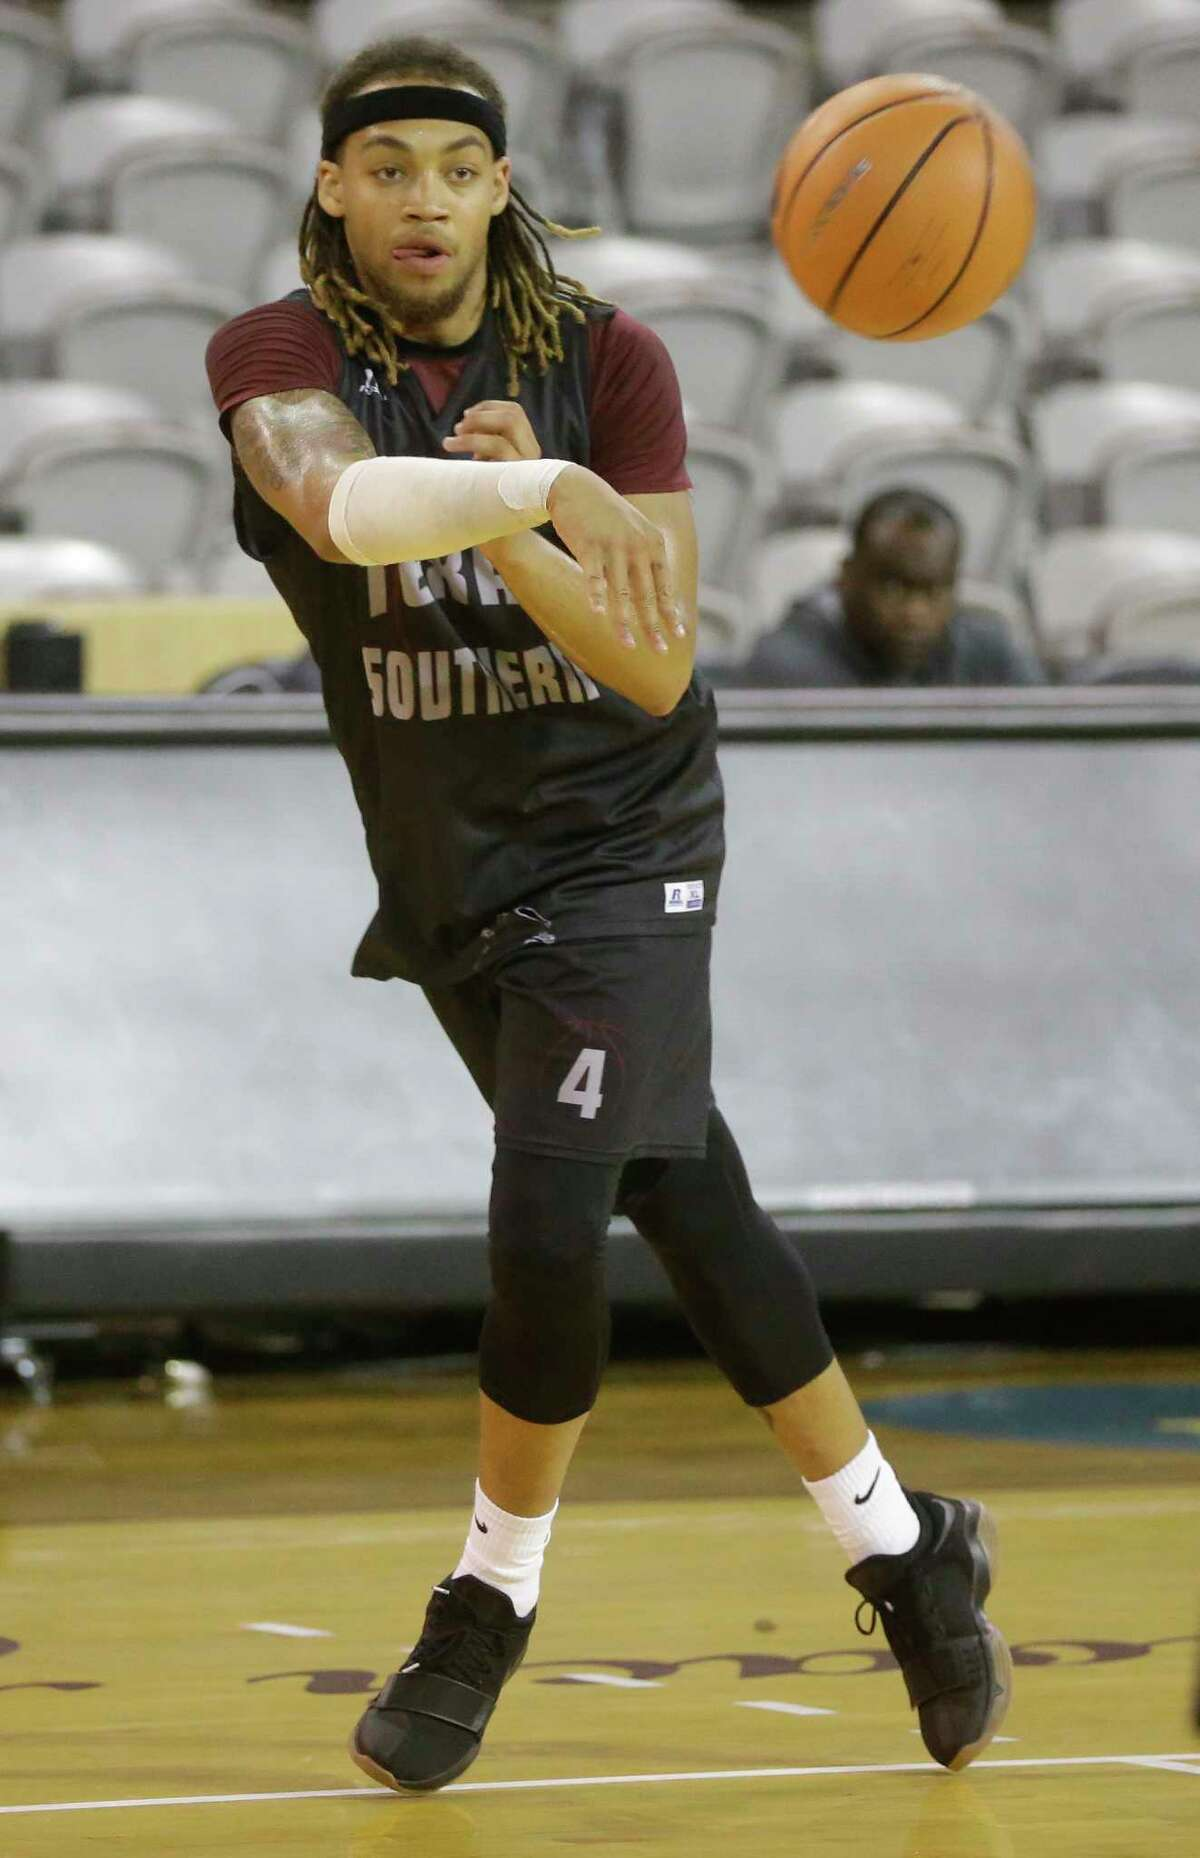 TSU senior forward Kevin Scott embraces the long road ahead, saying the tough schedule will show the Tigers what they need to work on to get better.